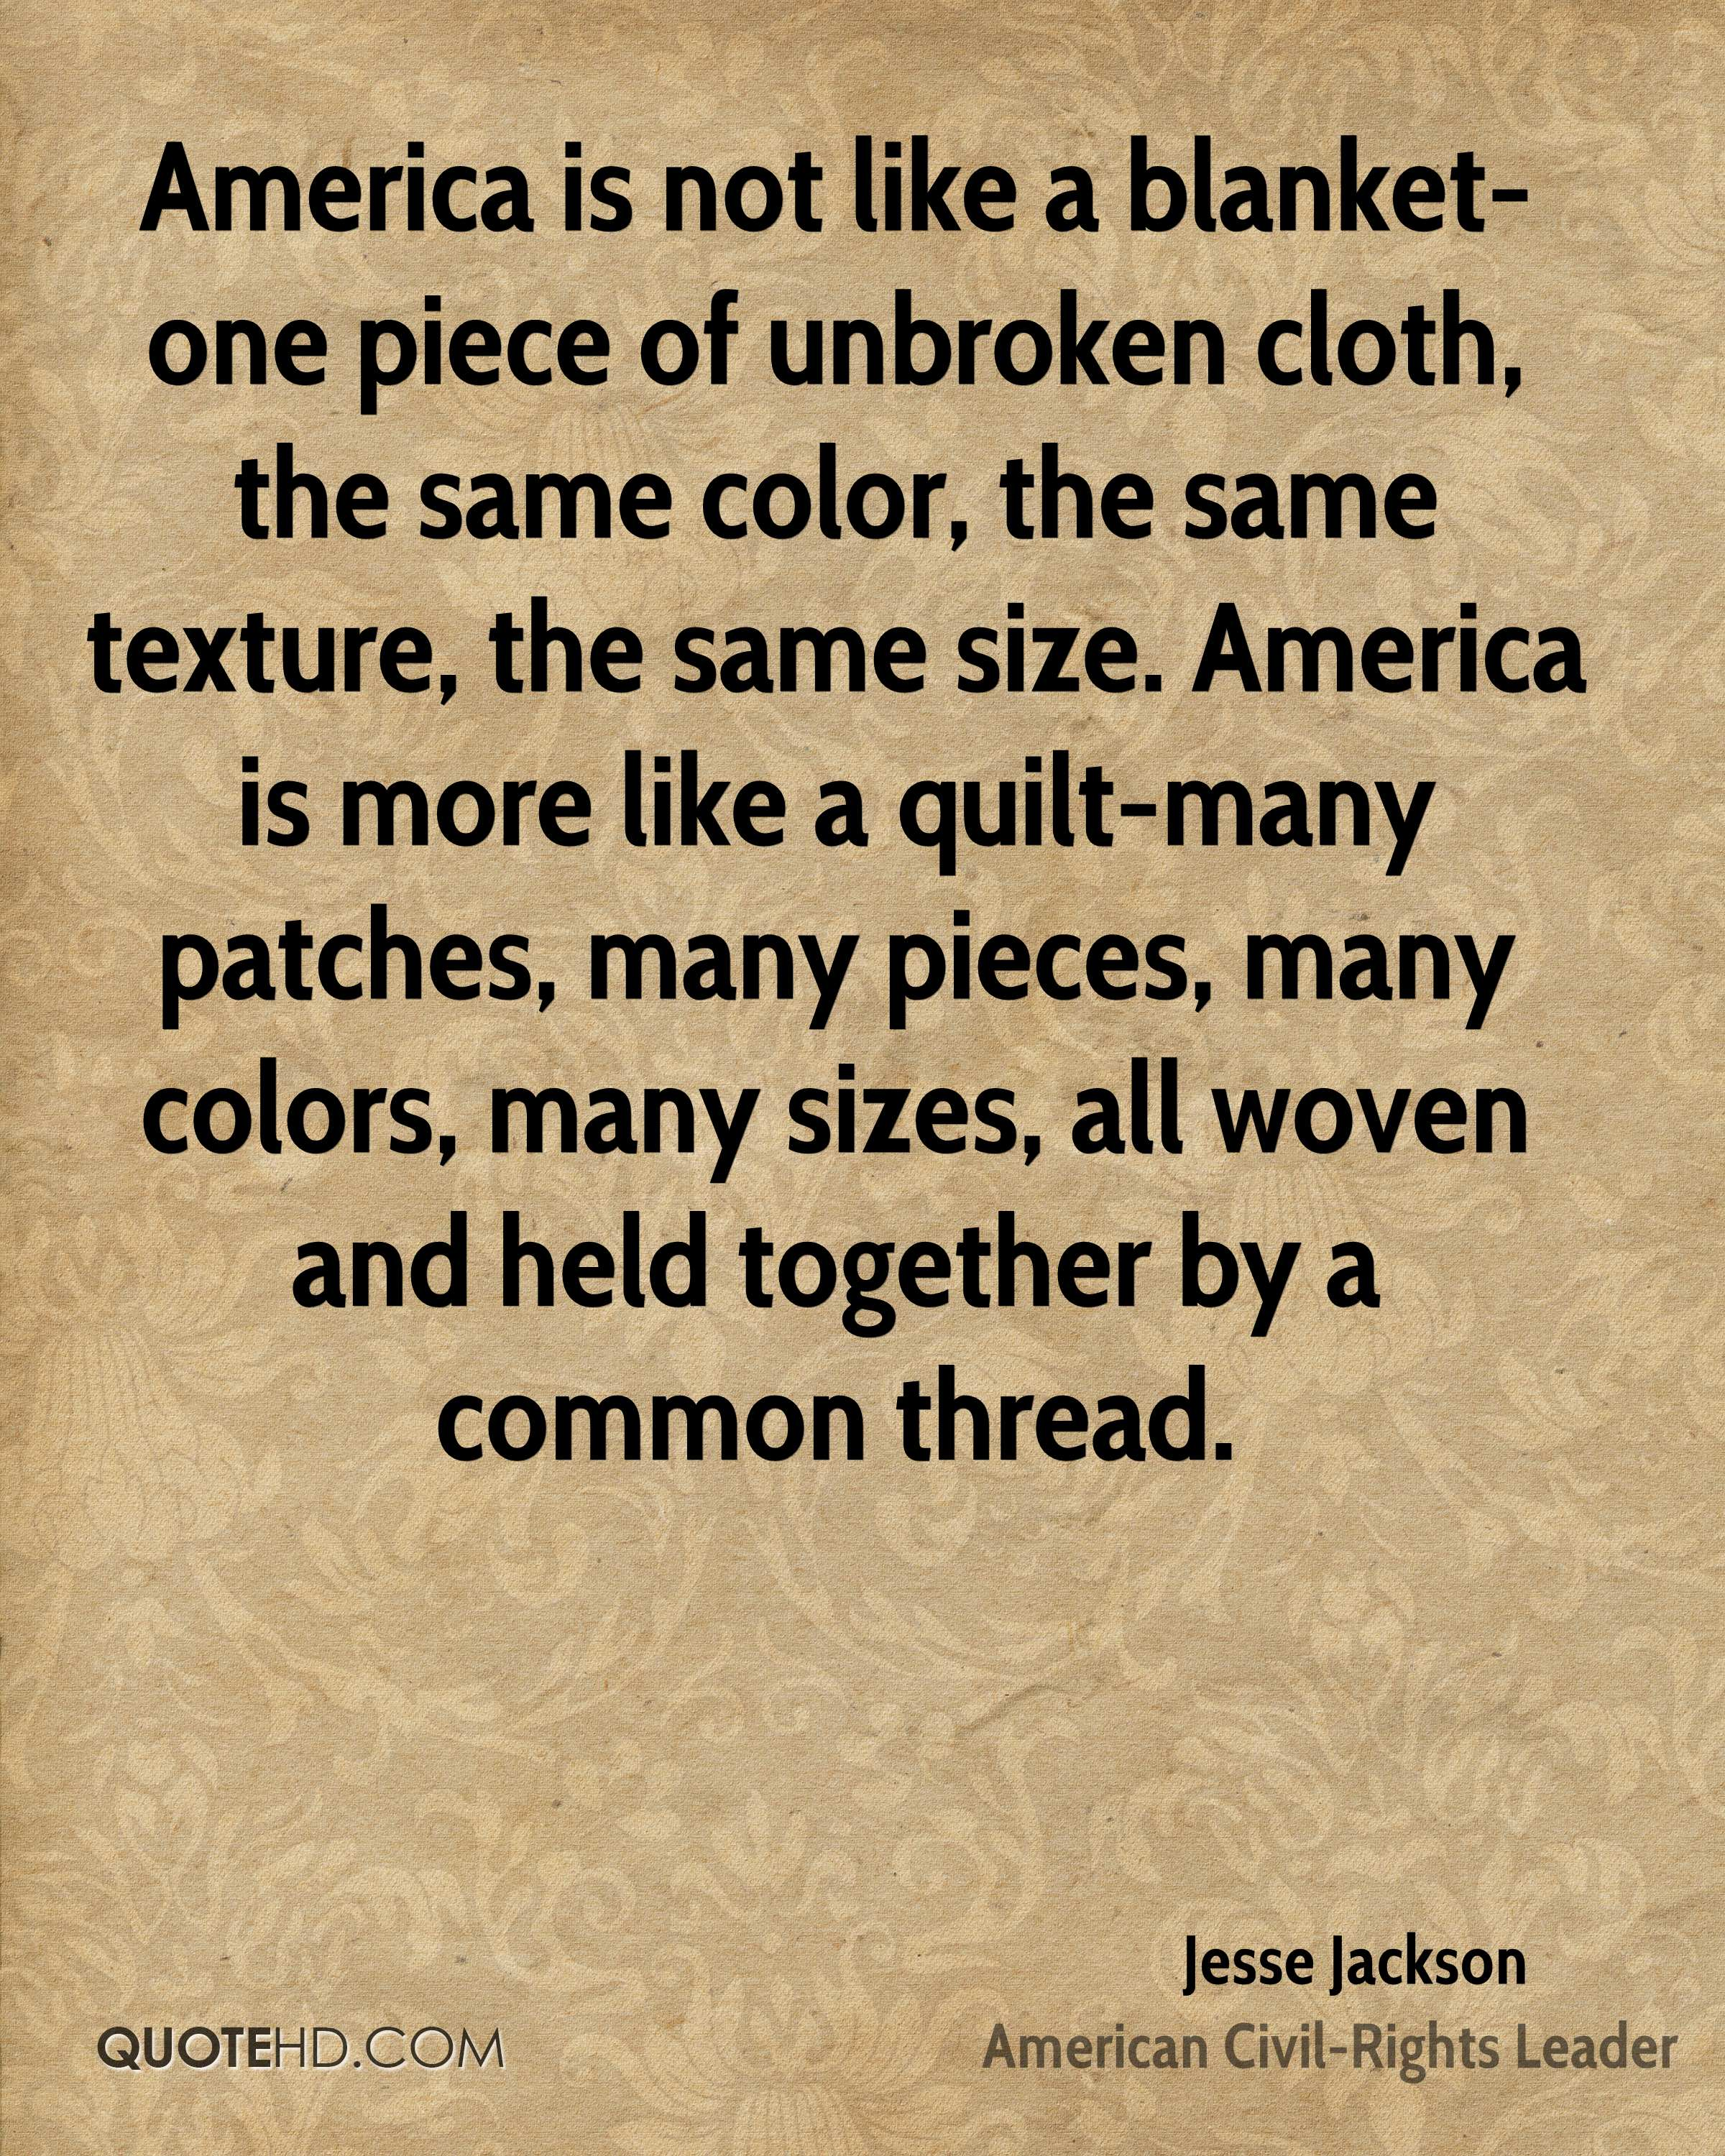 America is not like a blanket-one piece of unbroken cloth, the same color, the same texture, the same size. America is more like a quilt-many patches, many pieces, many colors, many sizes, all woven and held together by a common thread.